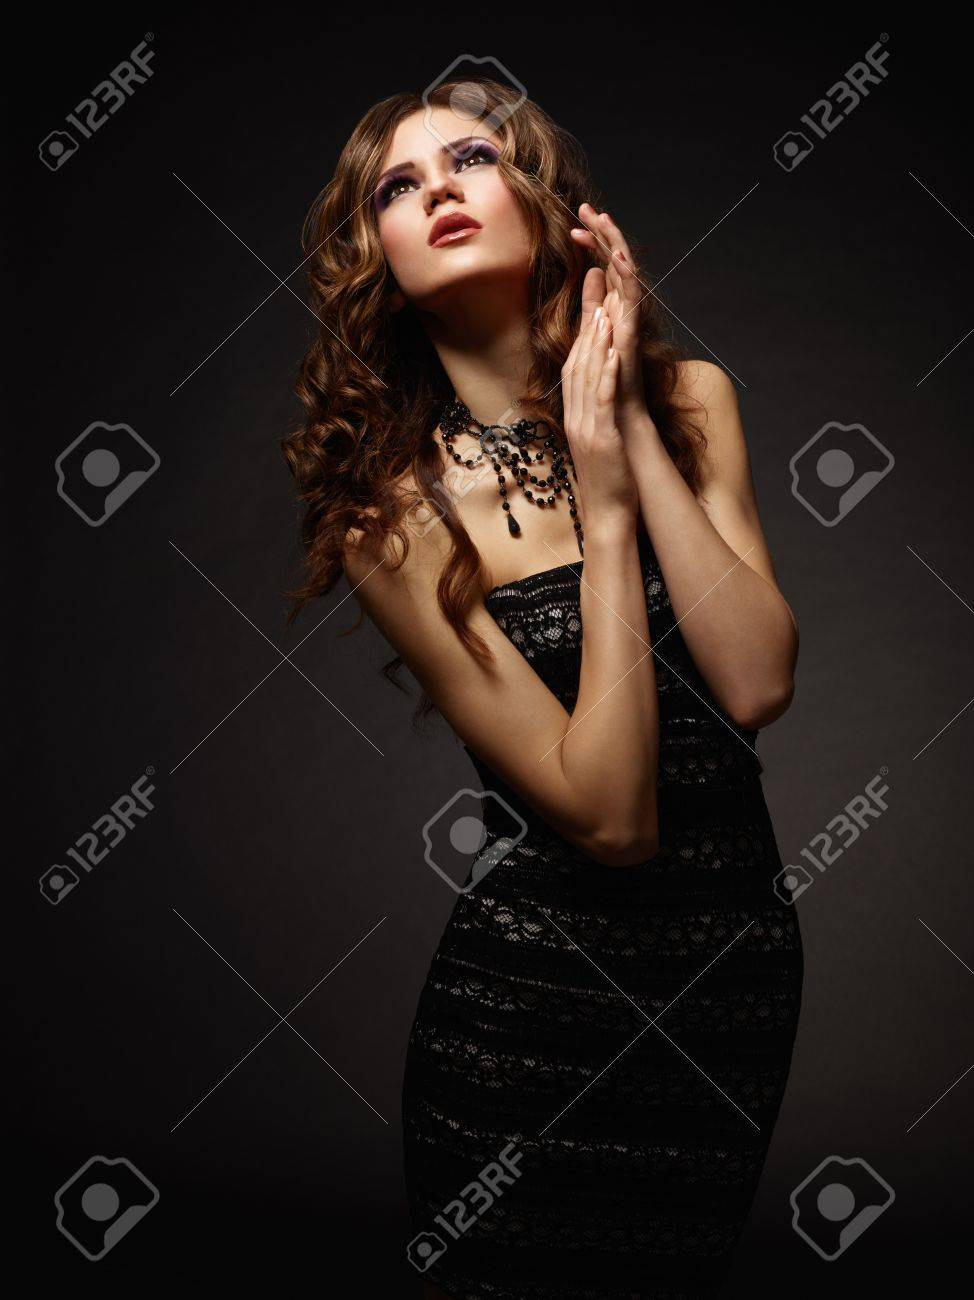 Young attractive woman praying over dark background Stock Photo - 13401605